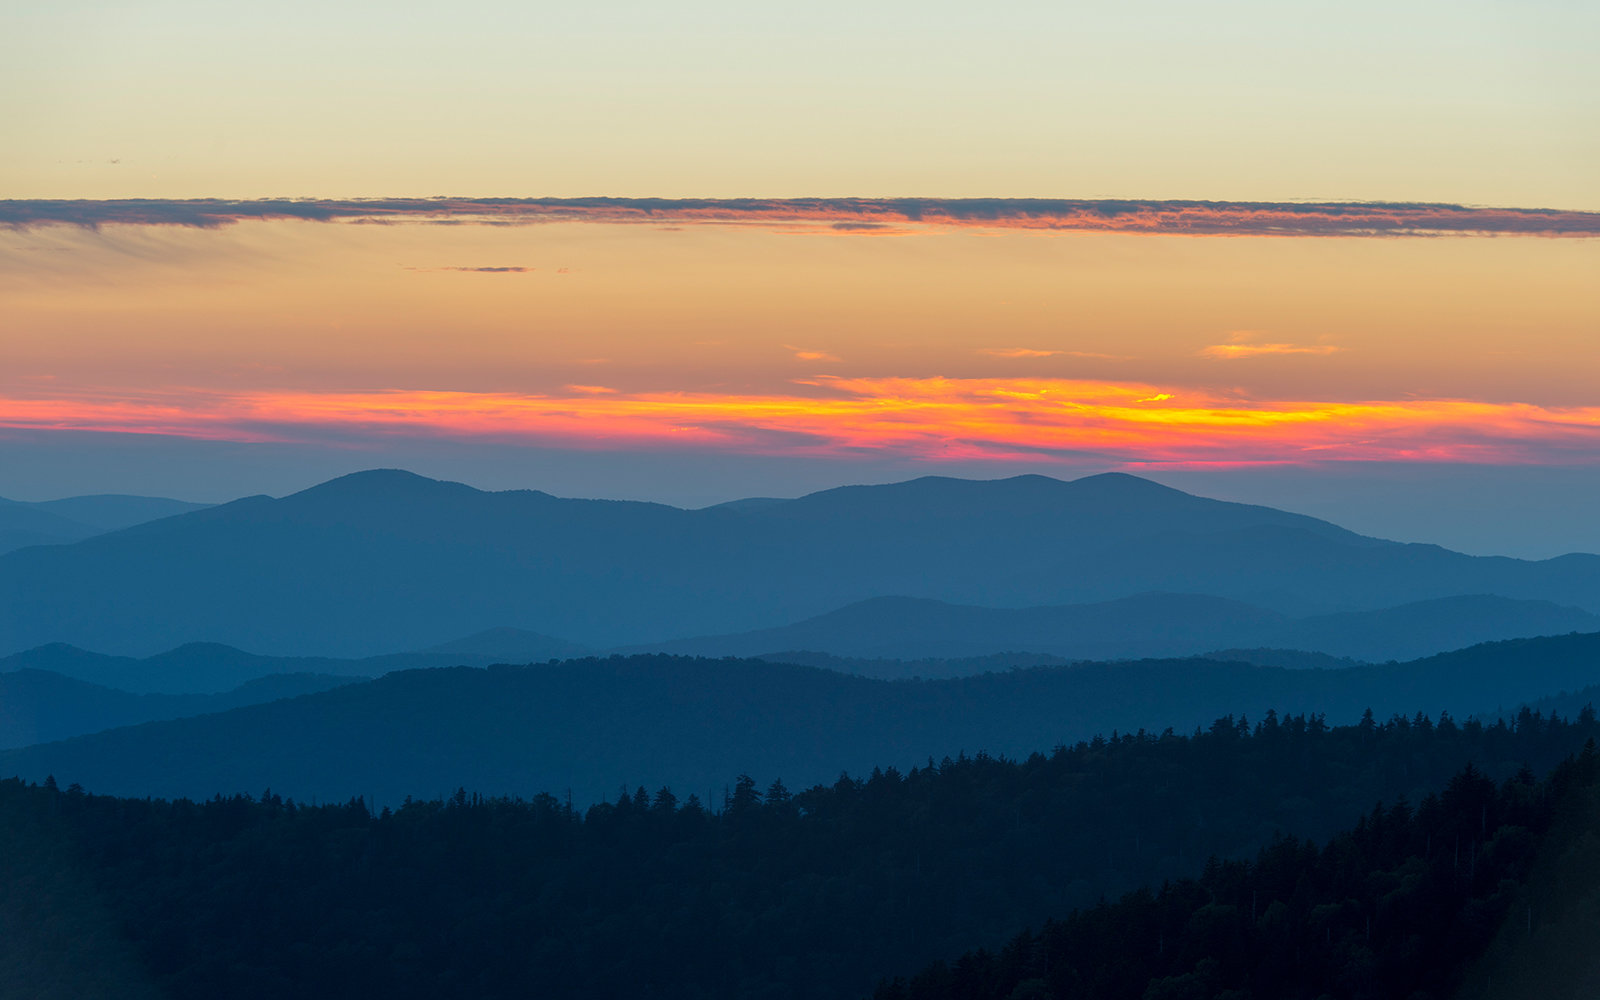 UNITED STATES - 2015/09/18: View of the Great Smoky Mountains National Park in North Carolina, USA at sunset from Clingman?s Dome parking lot. (Photo by Wolfgang Kaehler/LightRocket via Getty Images)